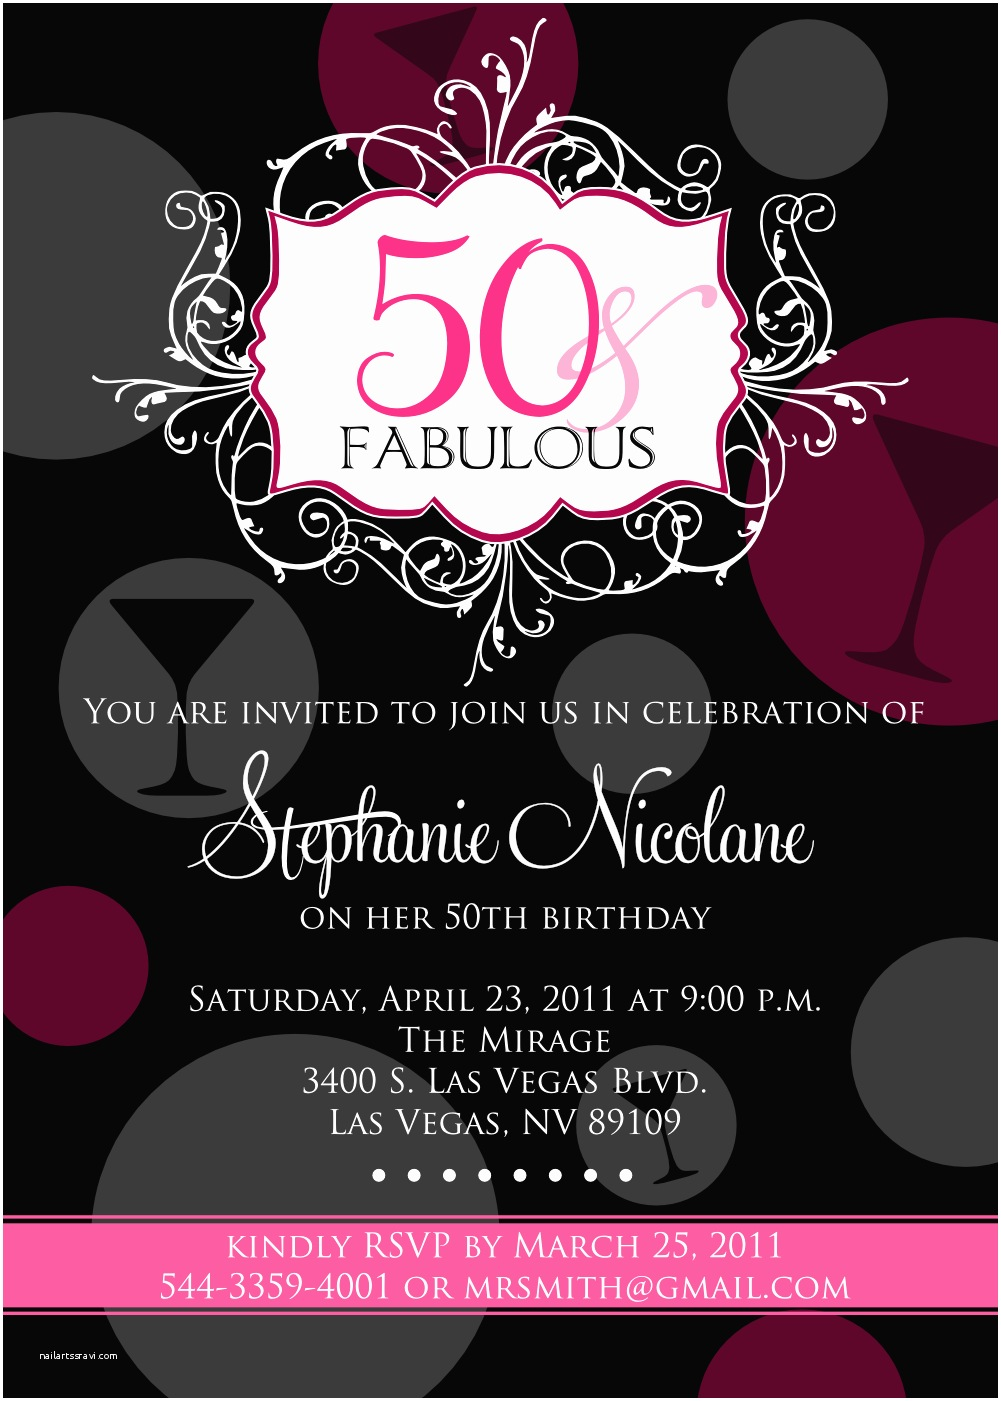 50th Birthday Party Invitations for Her Signatures by Sarah Fabulous 50th Birthday Party